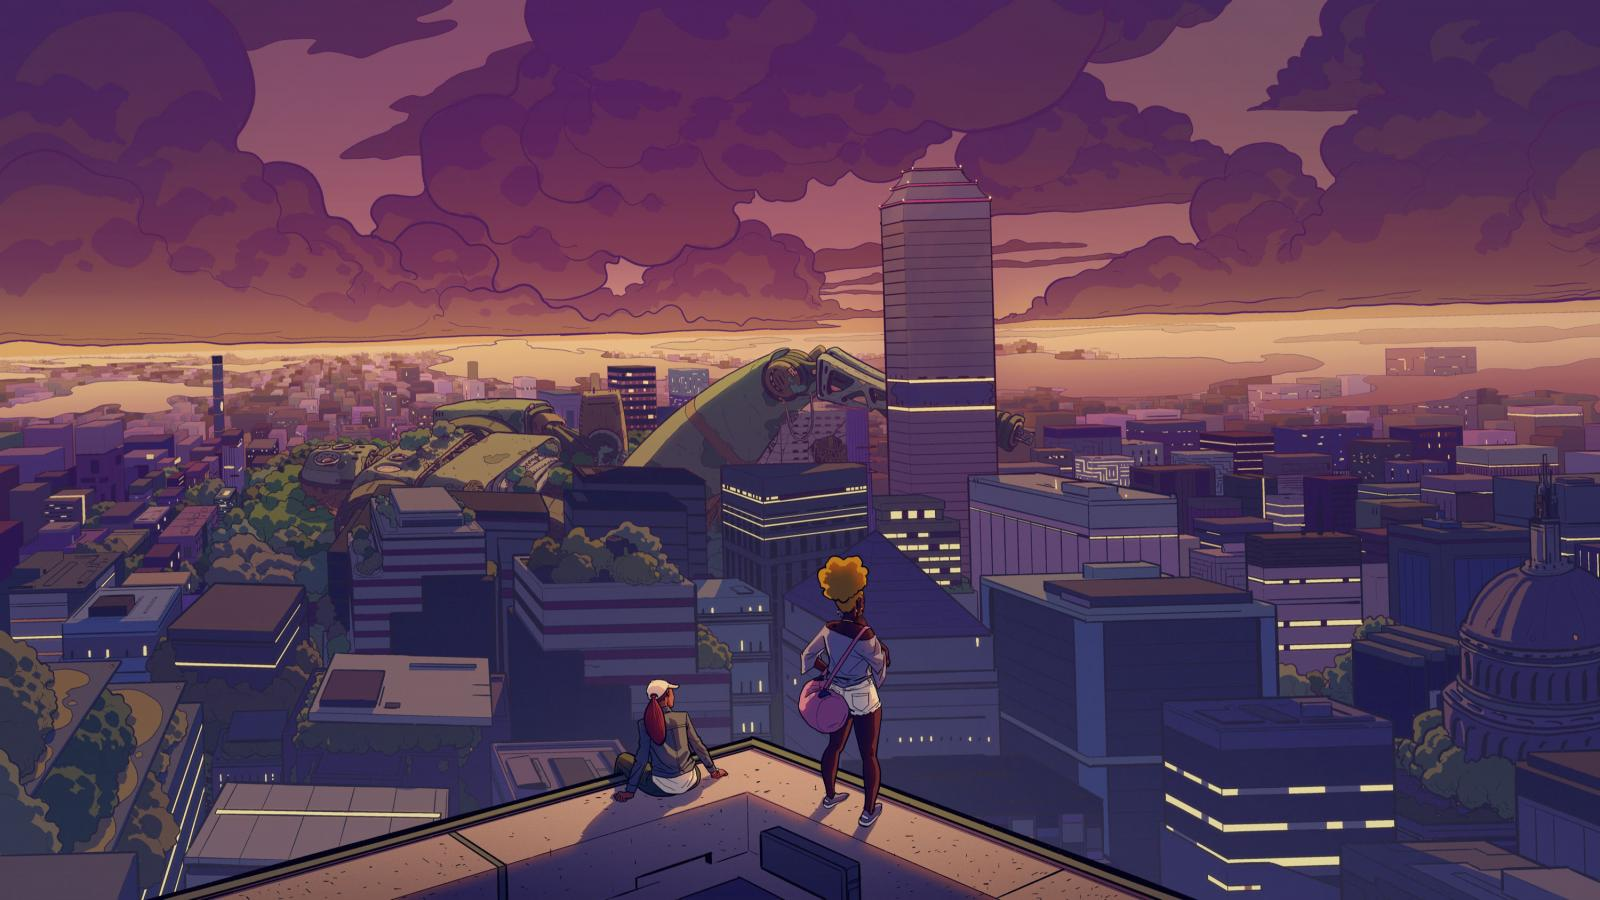 Illustrated Afrofuturist scene with two people looking out over a city